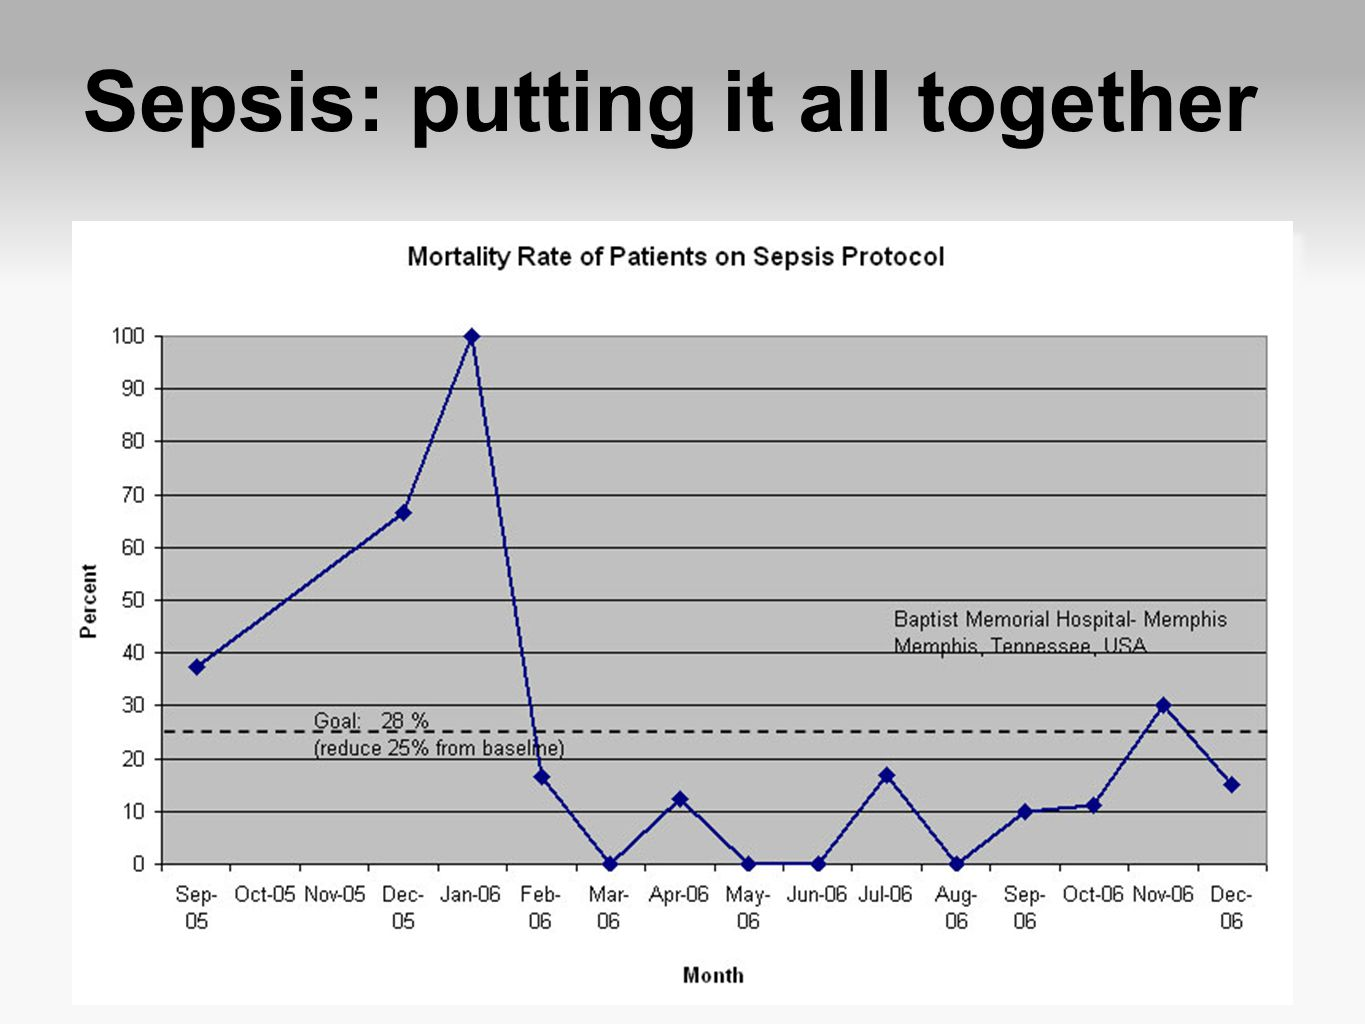 Sepsis: putting it all together